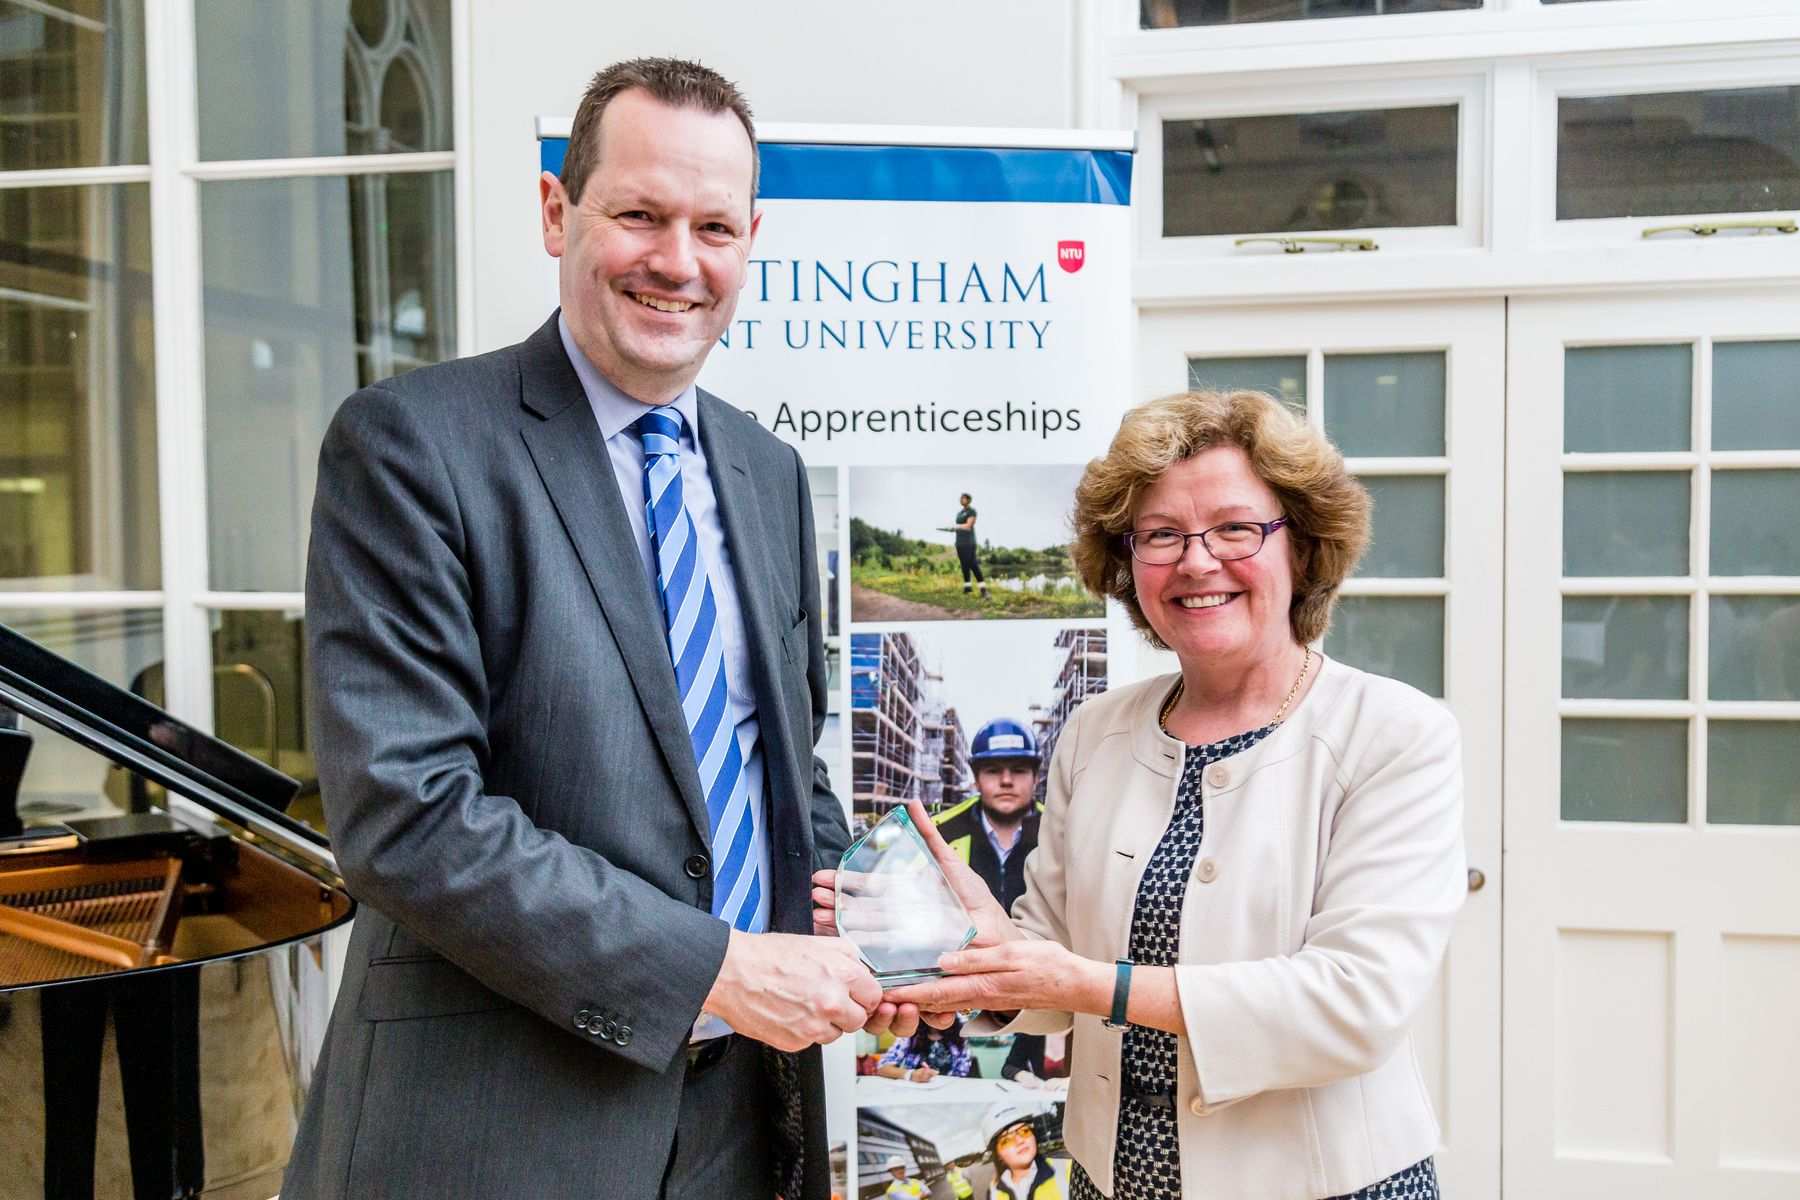 Gleeds accepting the award for large apprenticeship employer of the year